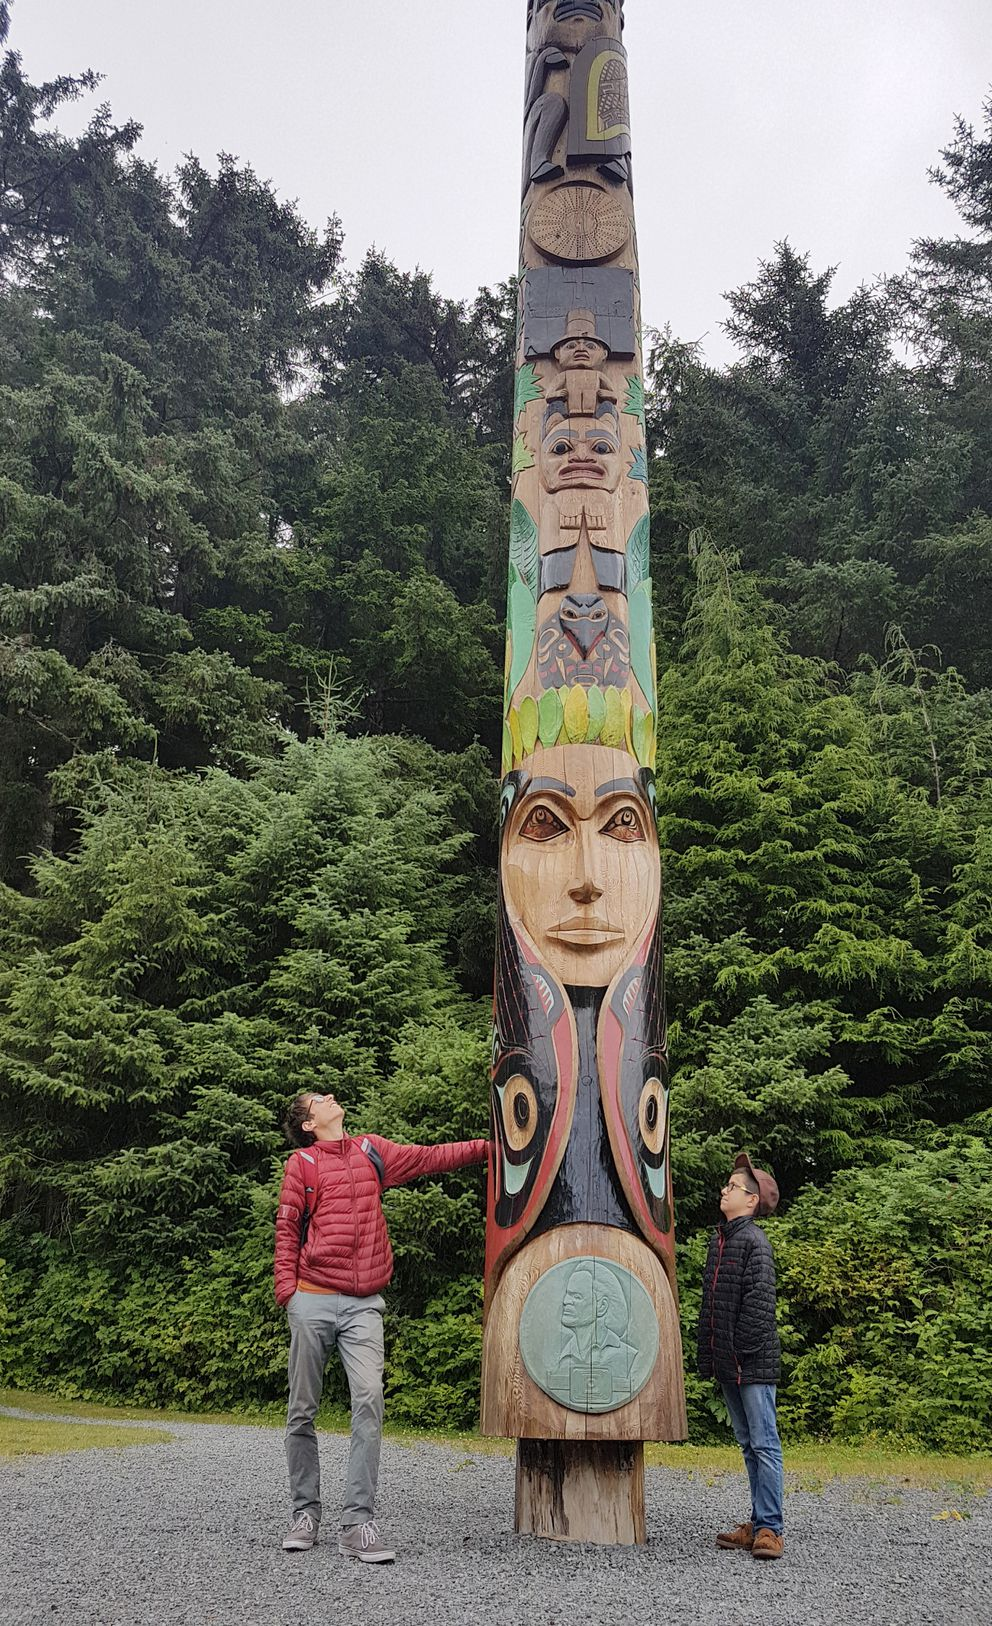 Walking through Sitka National Historic Park means exploring the many stories in the totems displayed there. (Photo by Erin Kirkland)